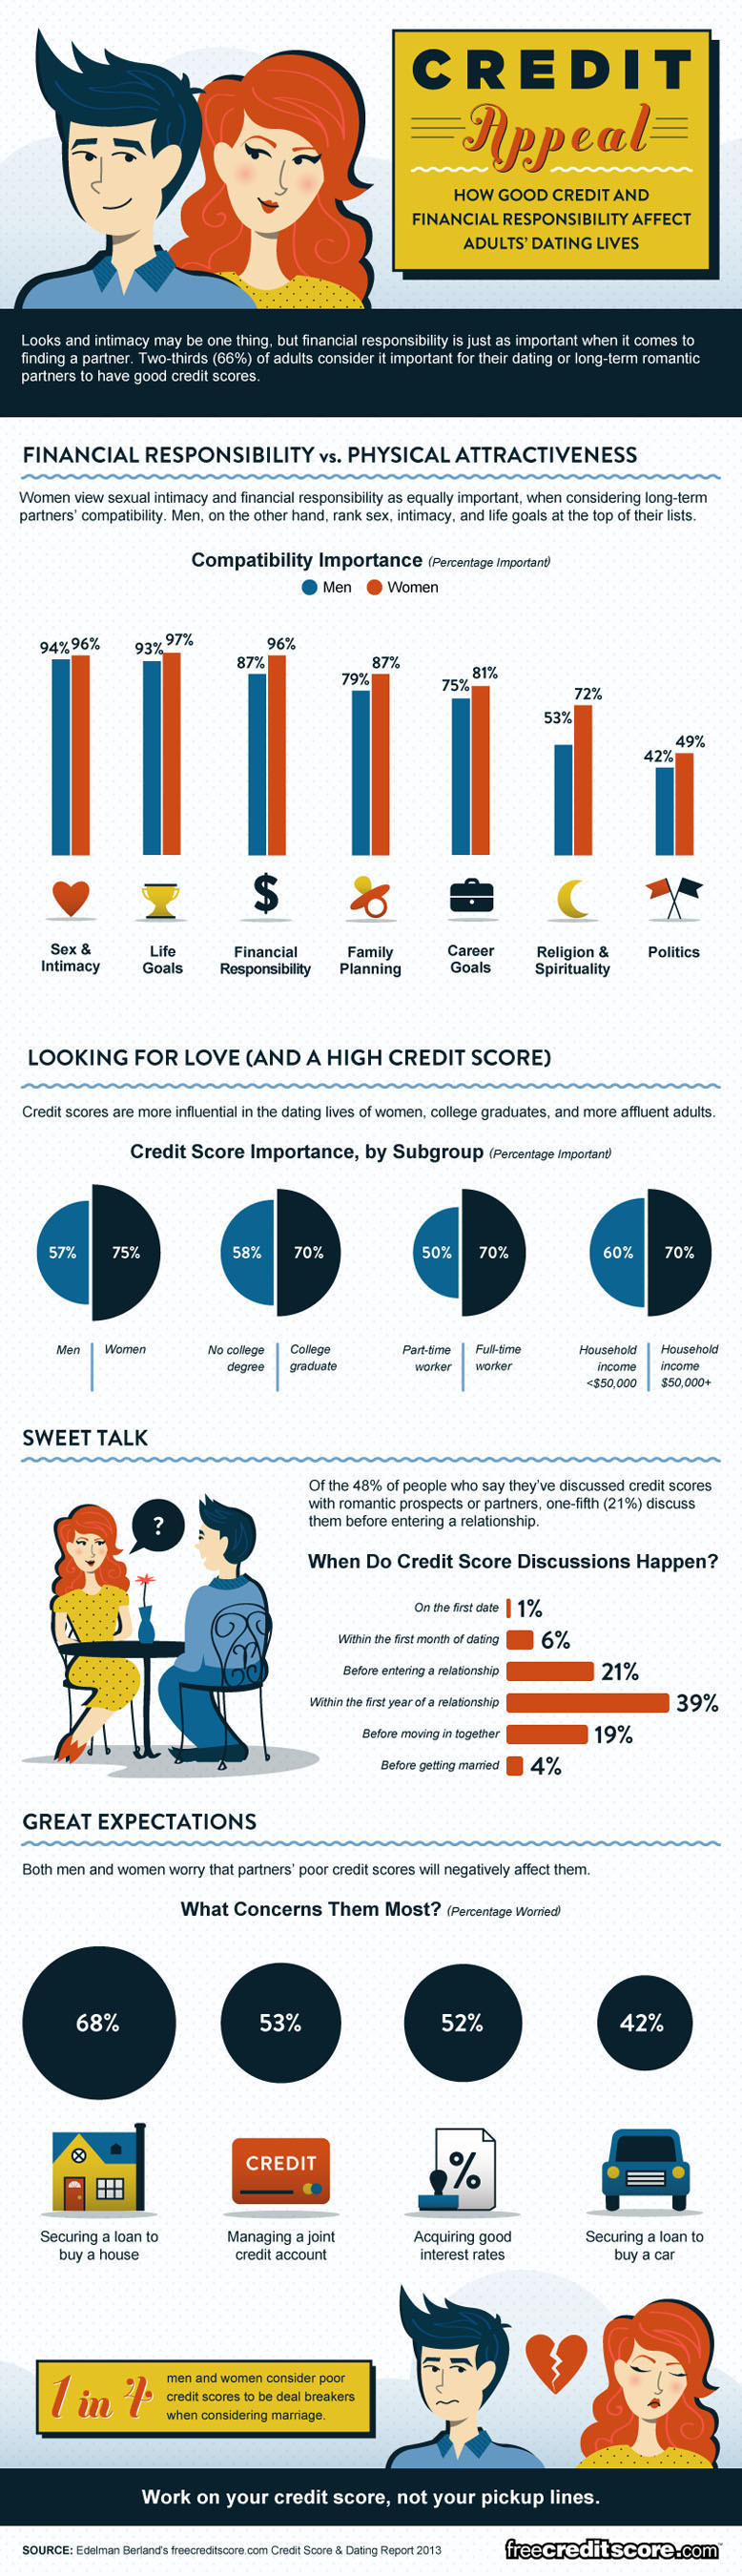 Credit Appeal - How Good Credit and Financial Responsibility Affect Adult's Dating Lives. Source: ...